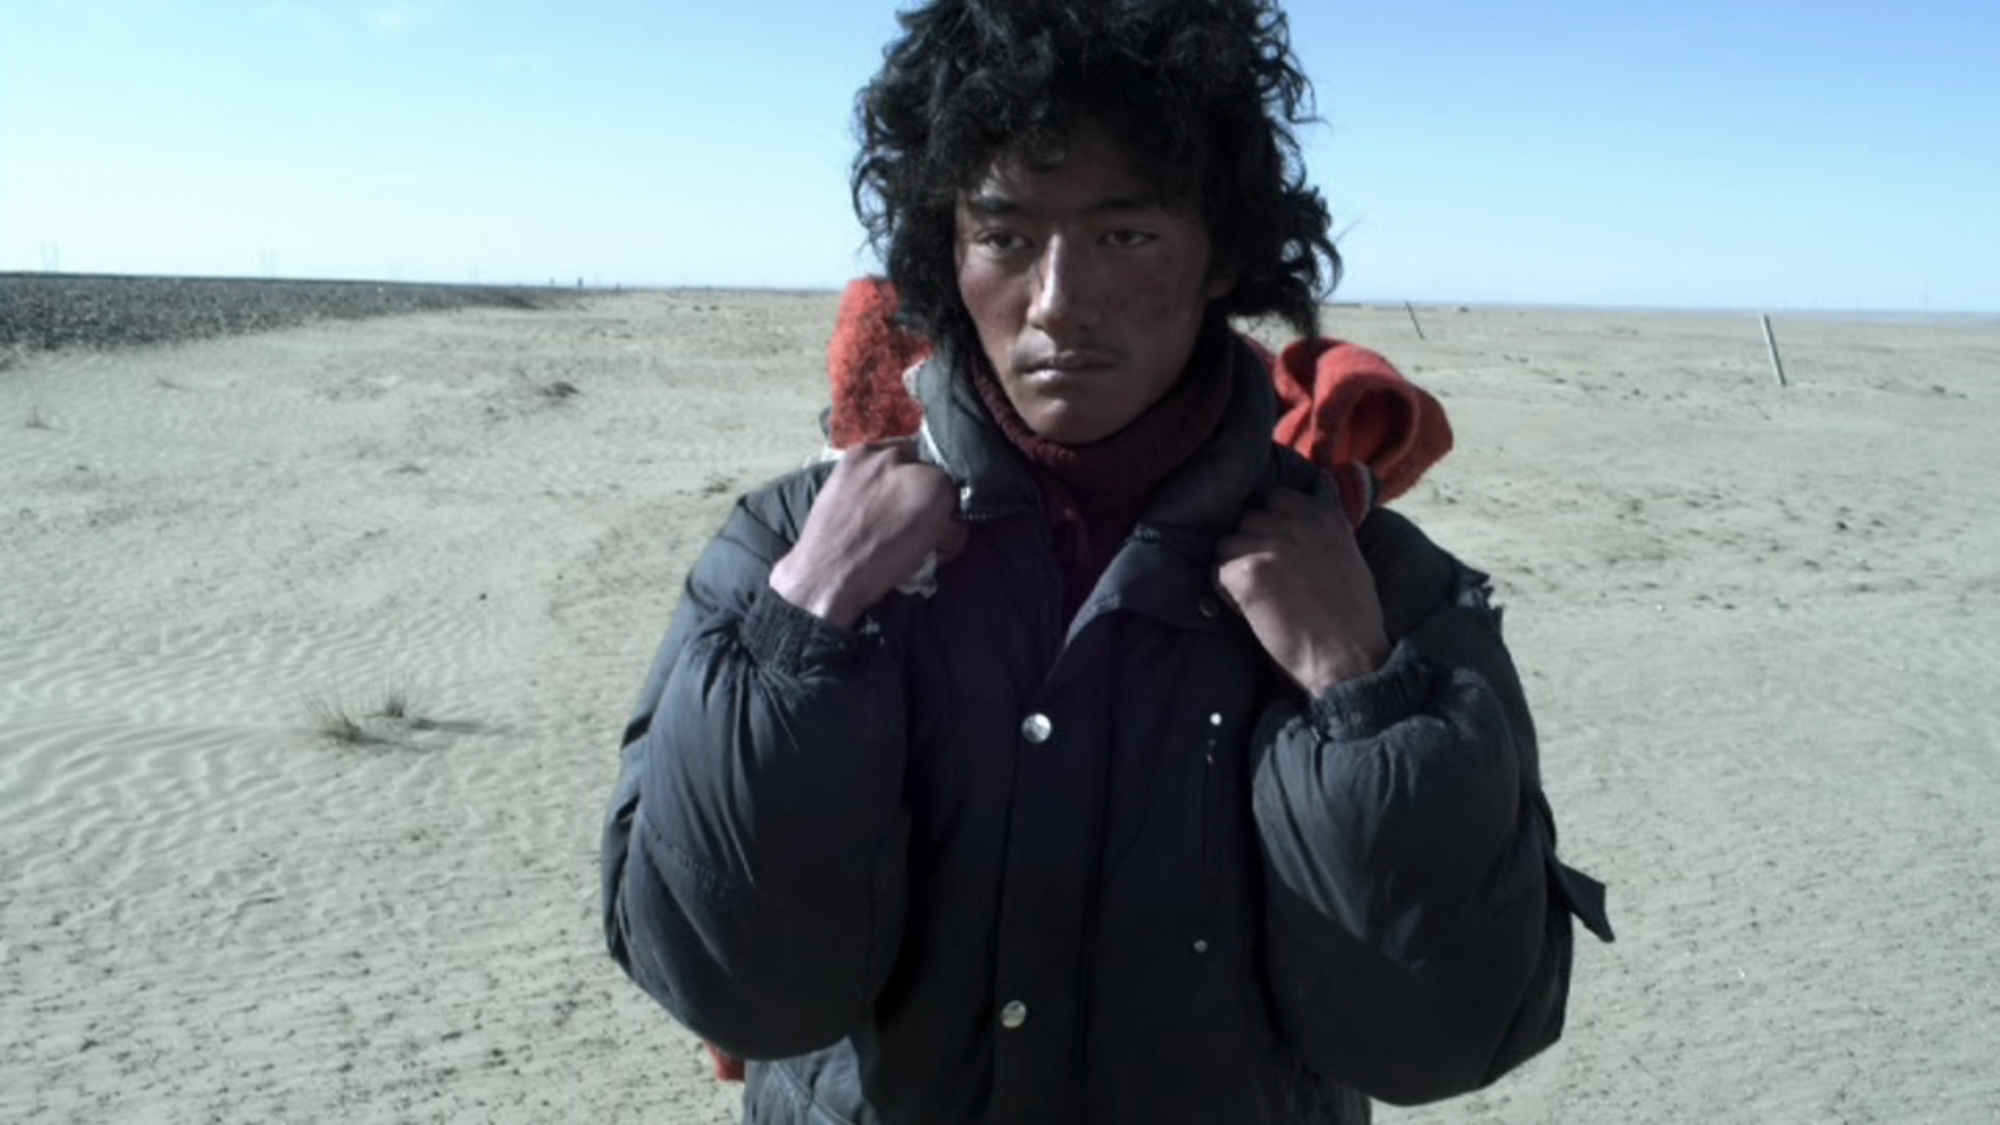 The Sun Beaten Path. 2011. China. Directed by Sonthar Gyal. 89 min. Courtesy of Gyal and Sundance Institute